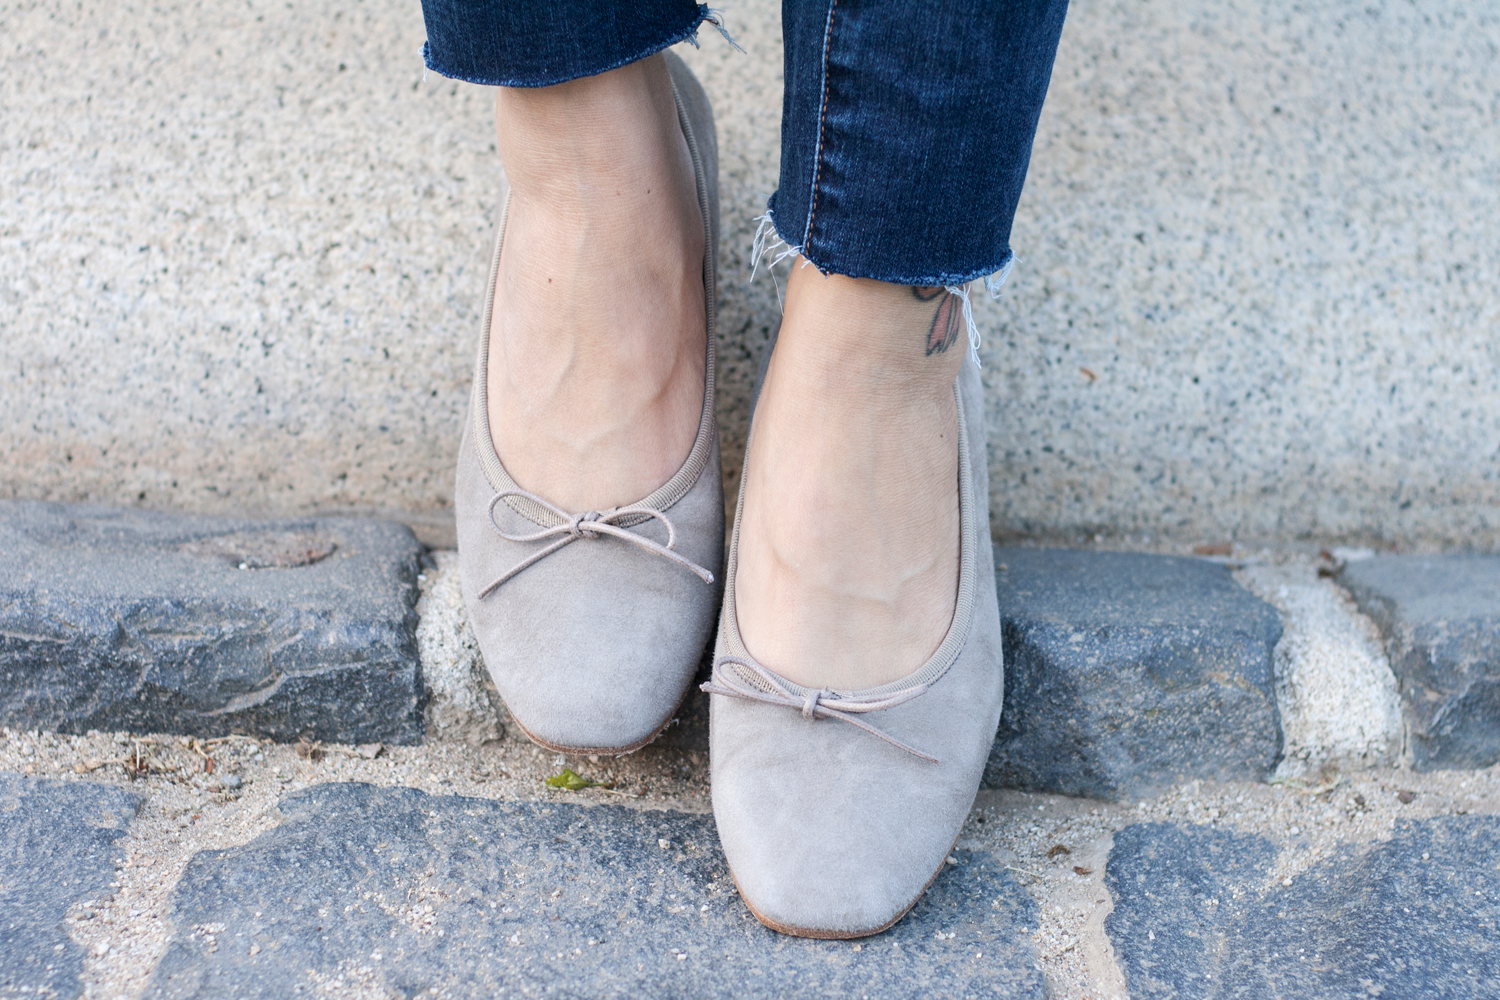 08katharinepage-suede-balletflats-sf-summer-fashion-style